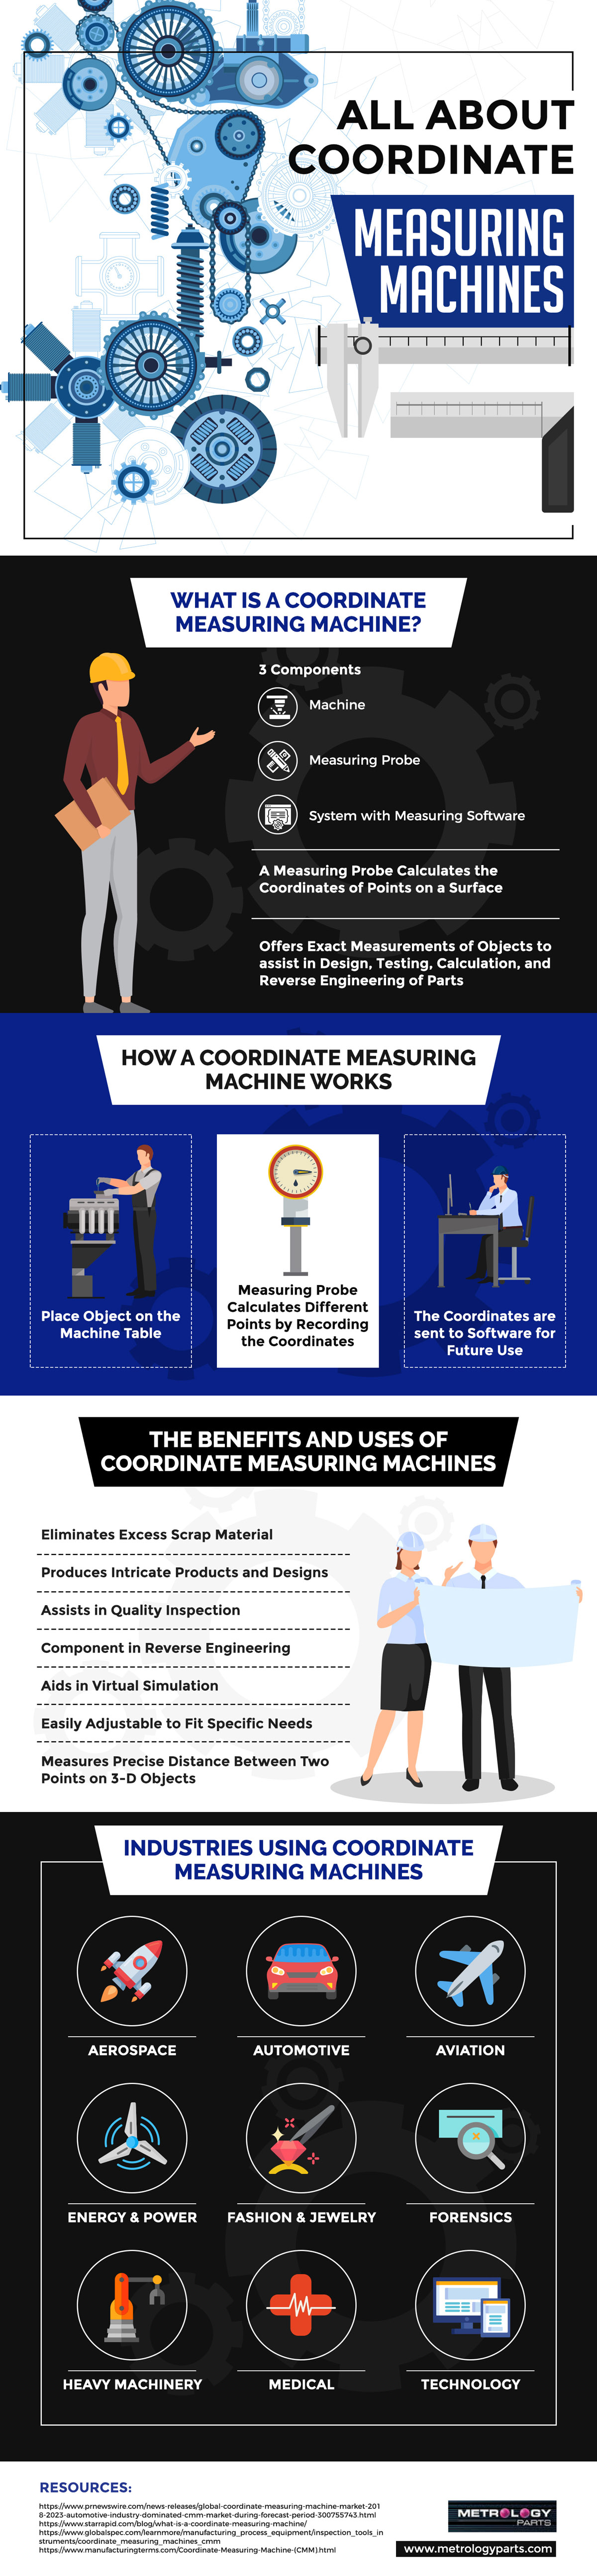 What is a Coordinate Measuring Machine?